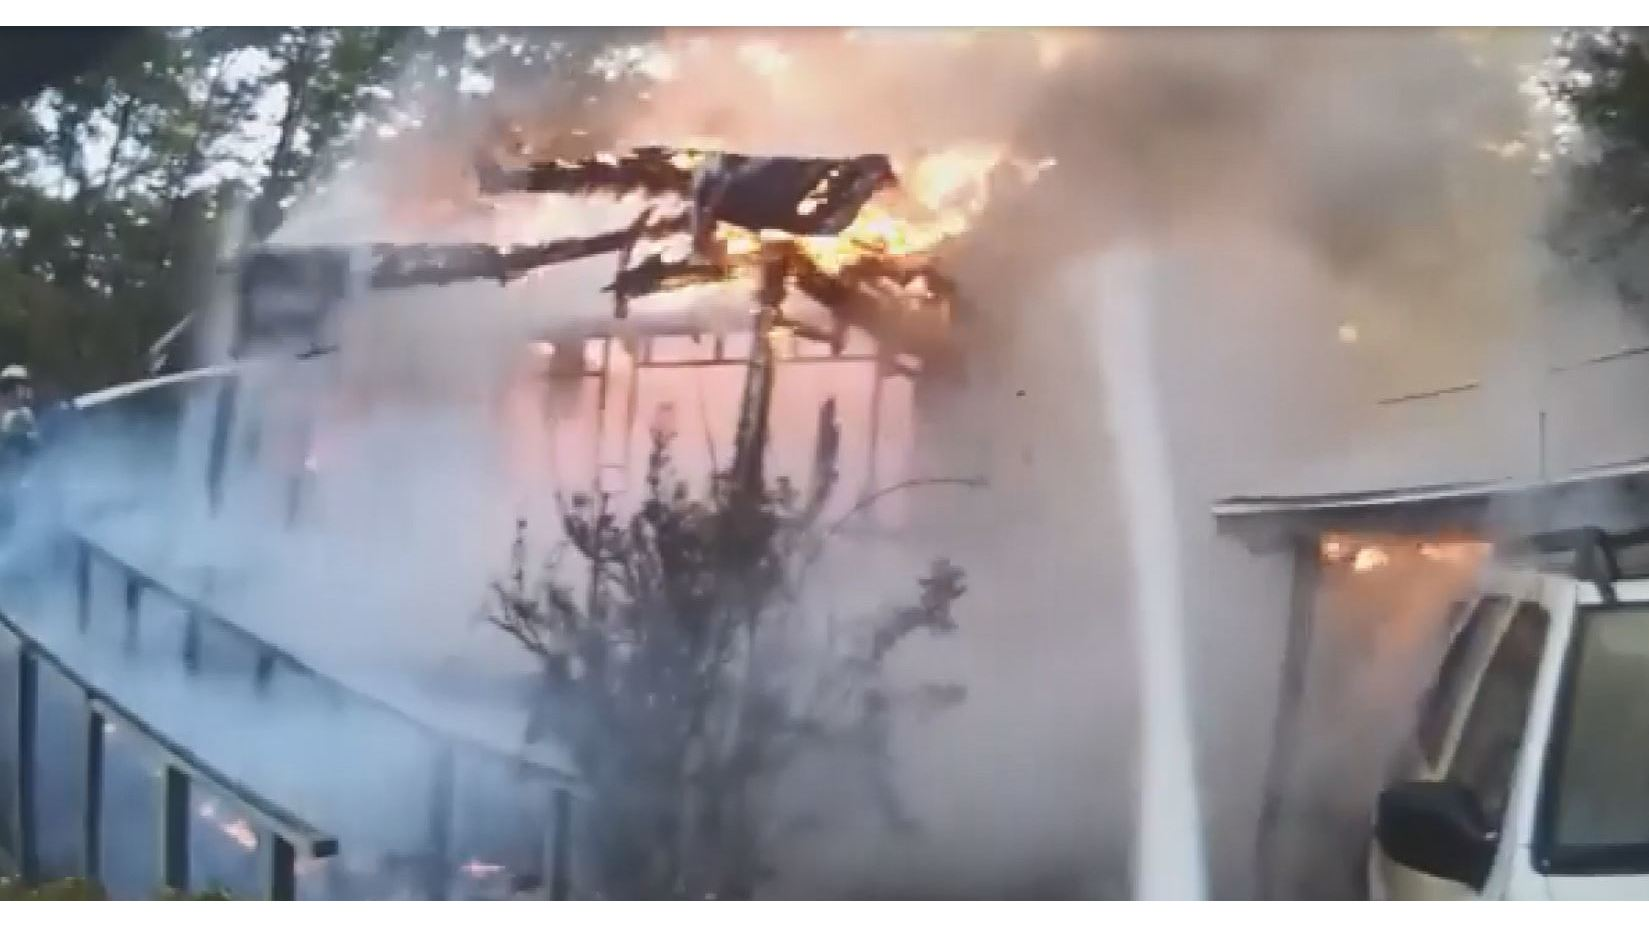 Firefighters release new video of fire that injured a man on Dauphin Island Parkway